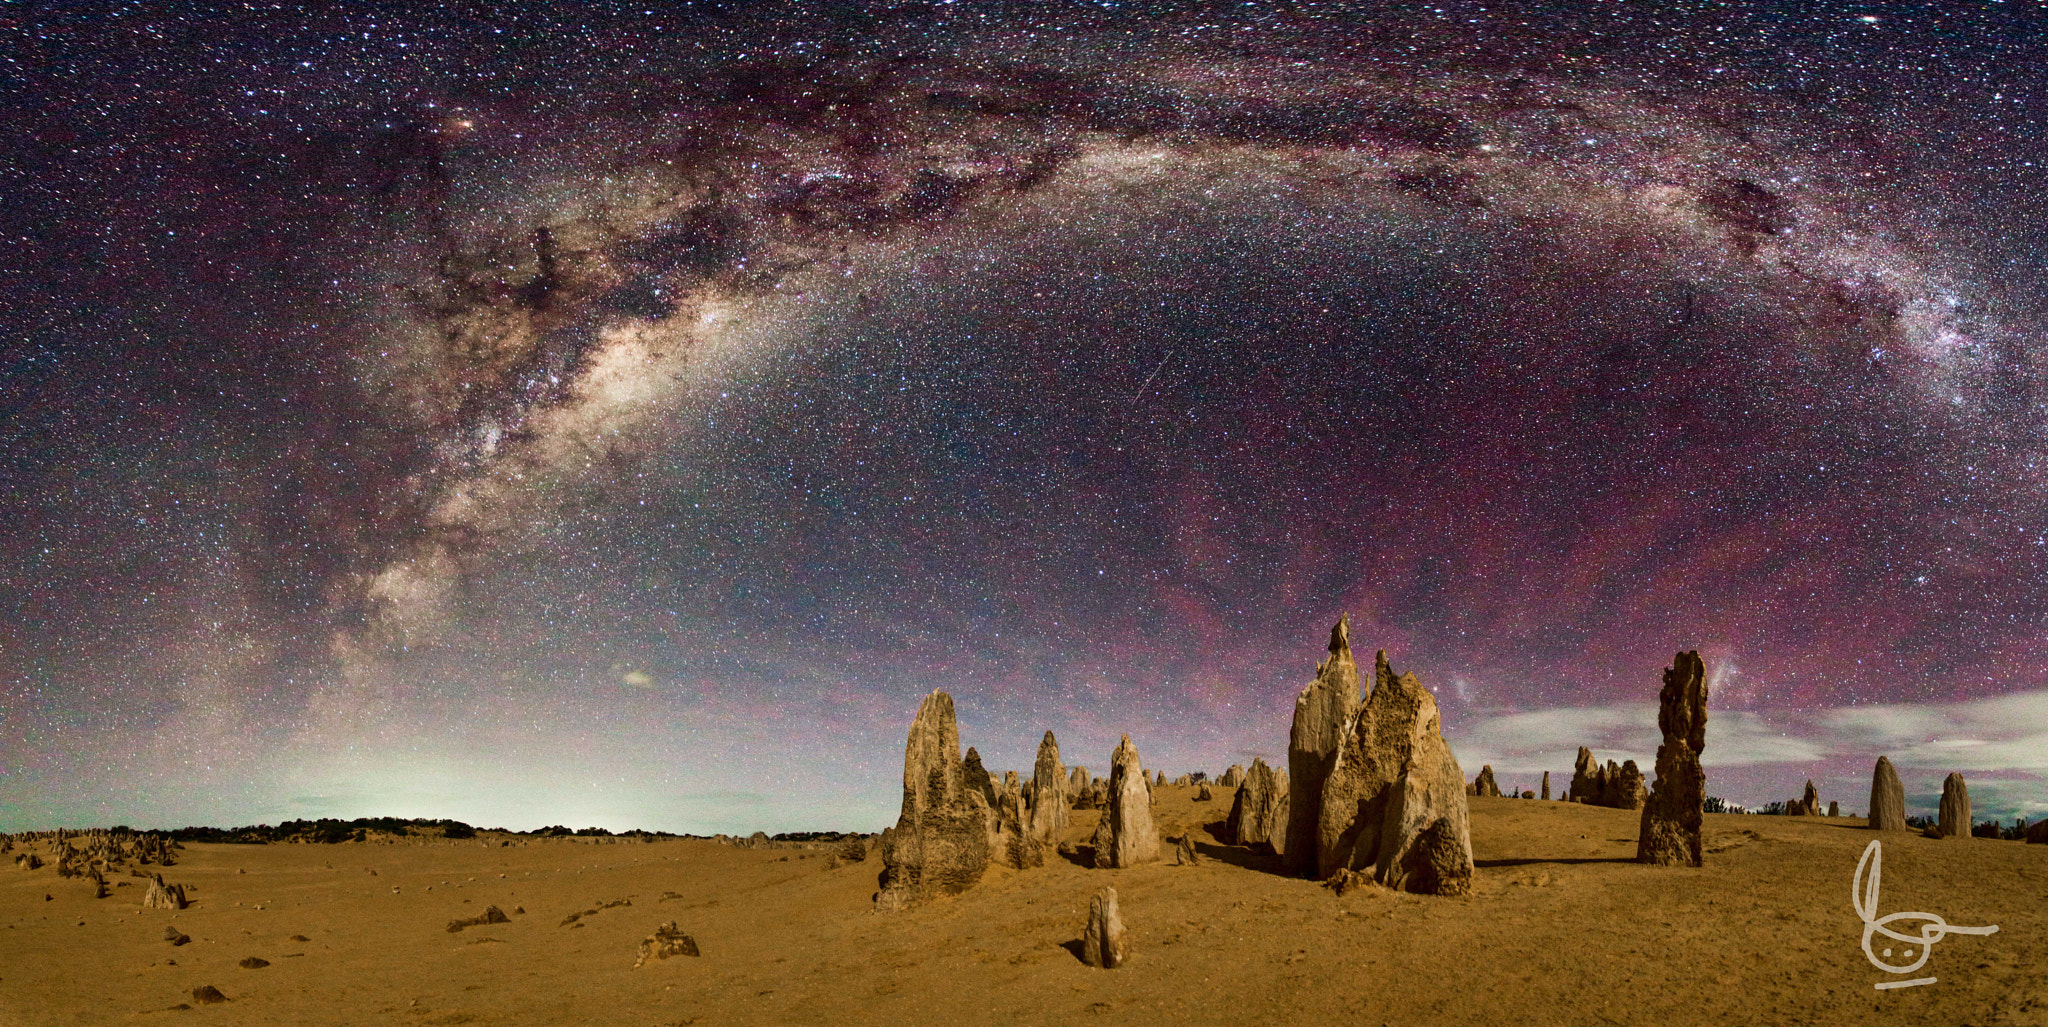 Photograph Radiant Skies by Michael Goh on 500px